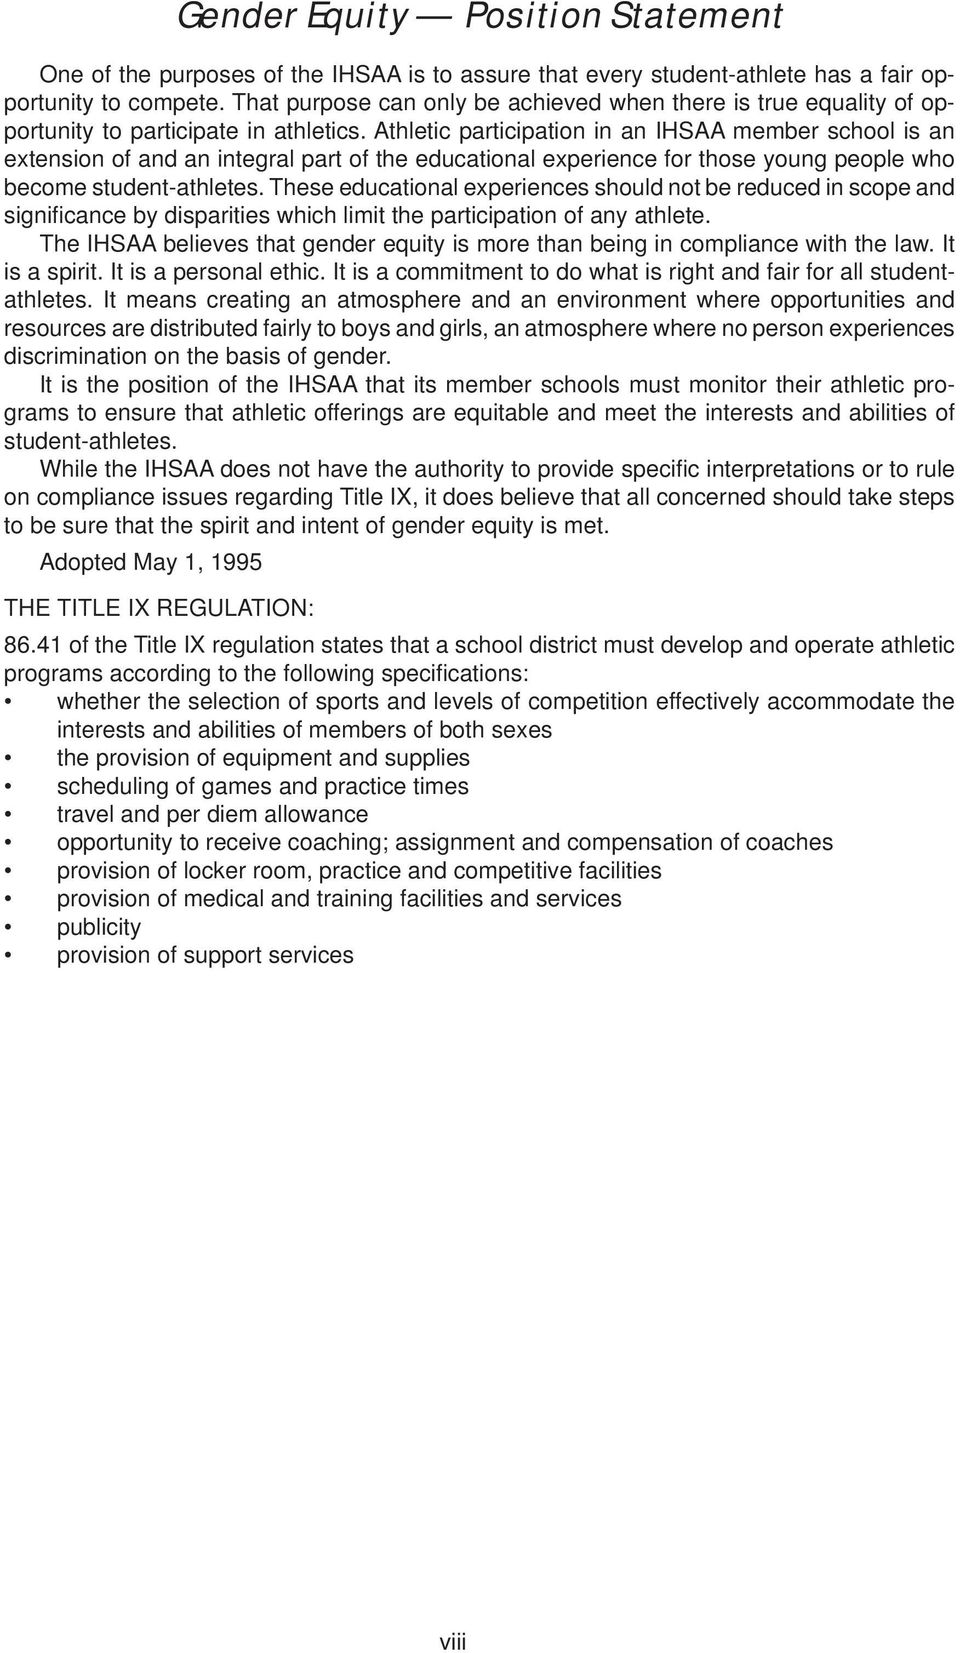 Athletic participation in an IHSAA member school is an extension of and an integral part of the educational experience for those young people who become student-athletes.